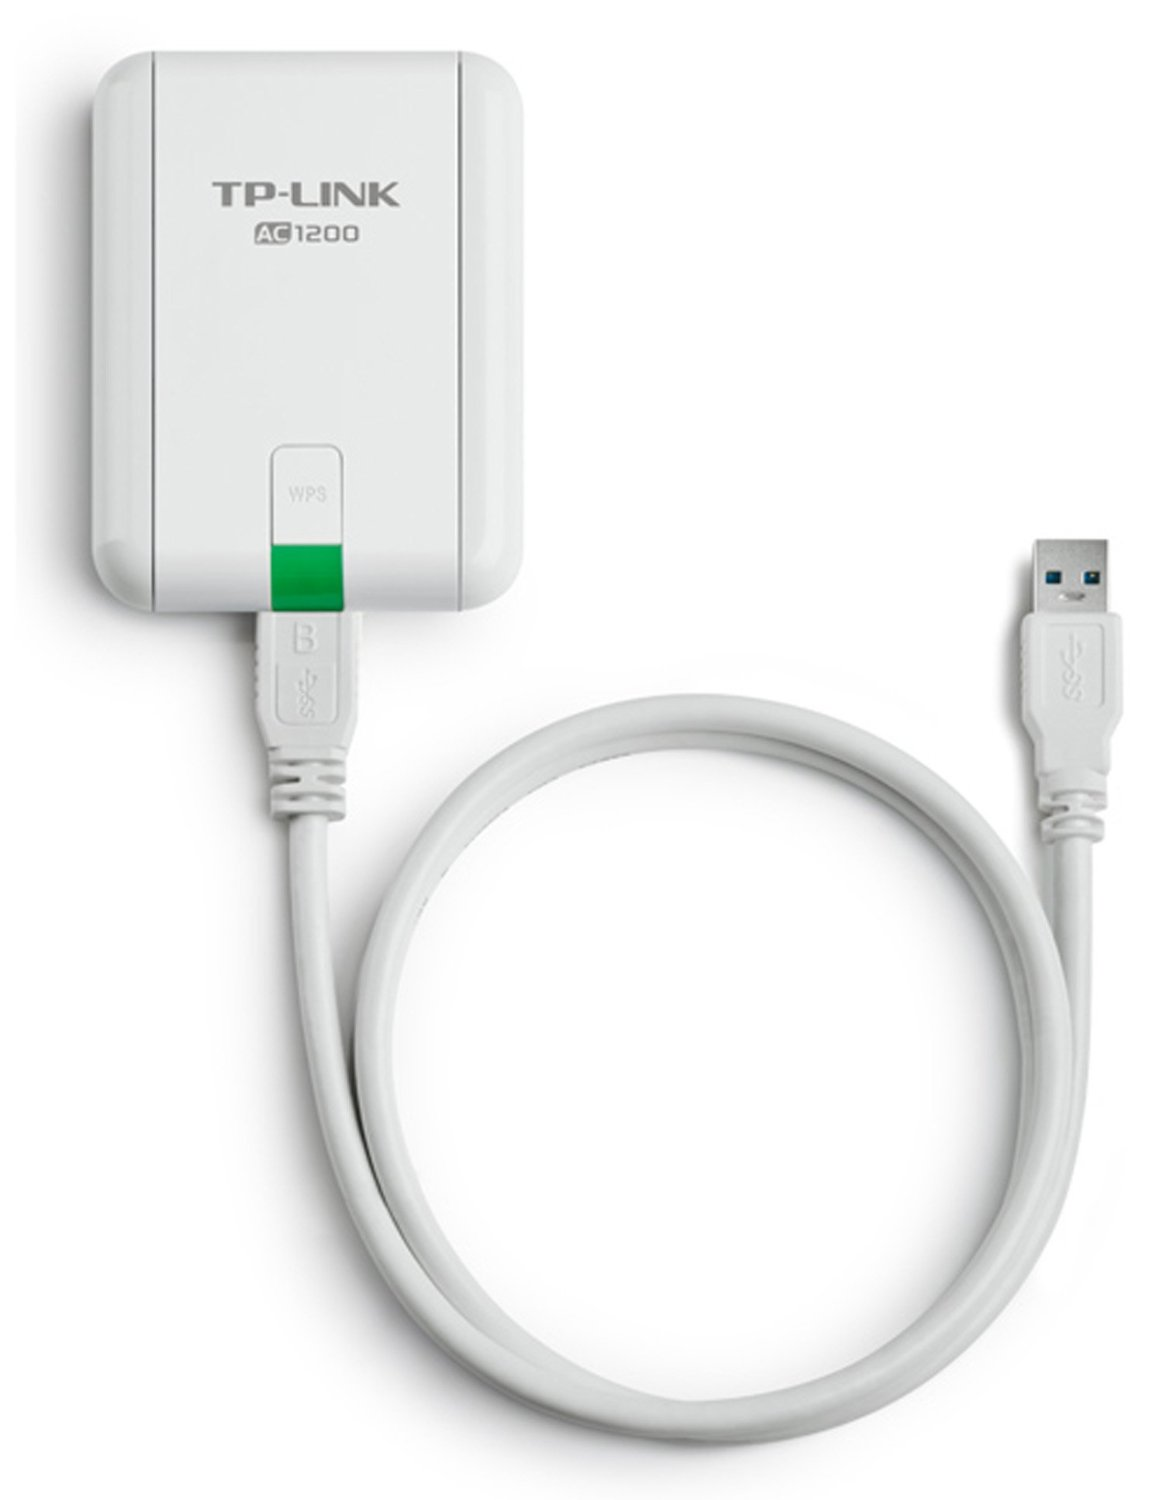 TP-LINK-AC1200-High-Gain-Wireless-Dual-Band-USB-Adapter-Archer-T4UH.5313-1.jpg